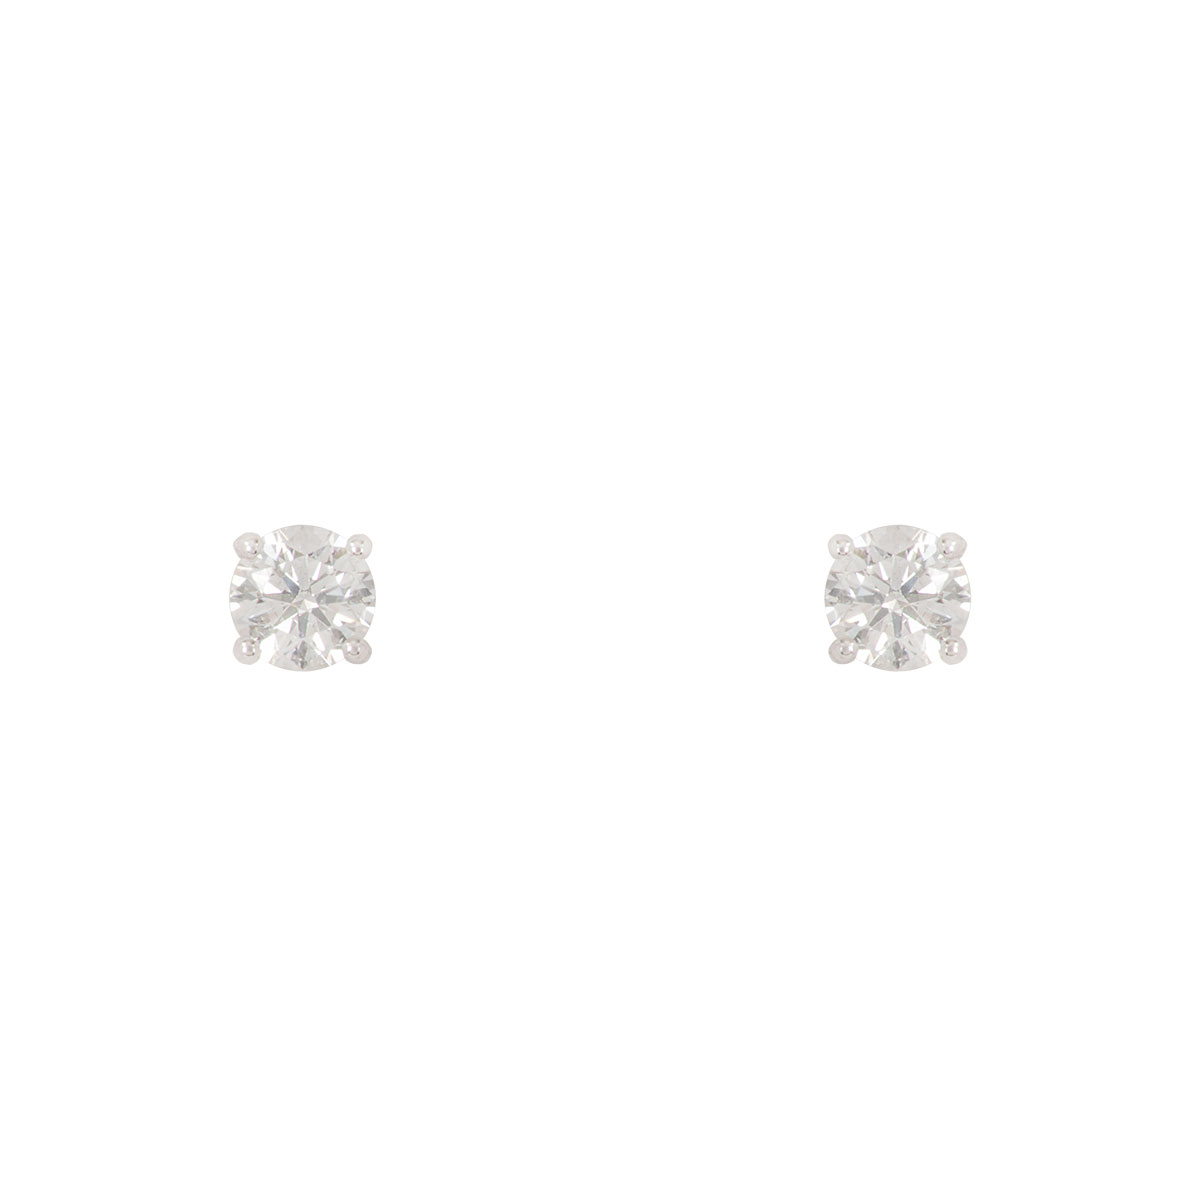 White Gold Diamond Earrings 0.82ct H/VS